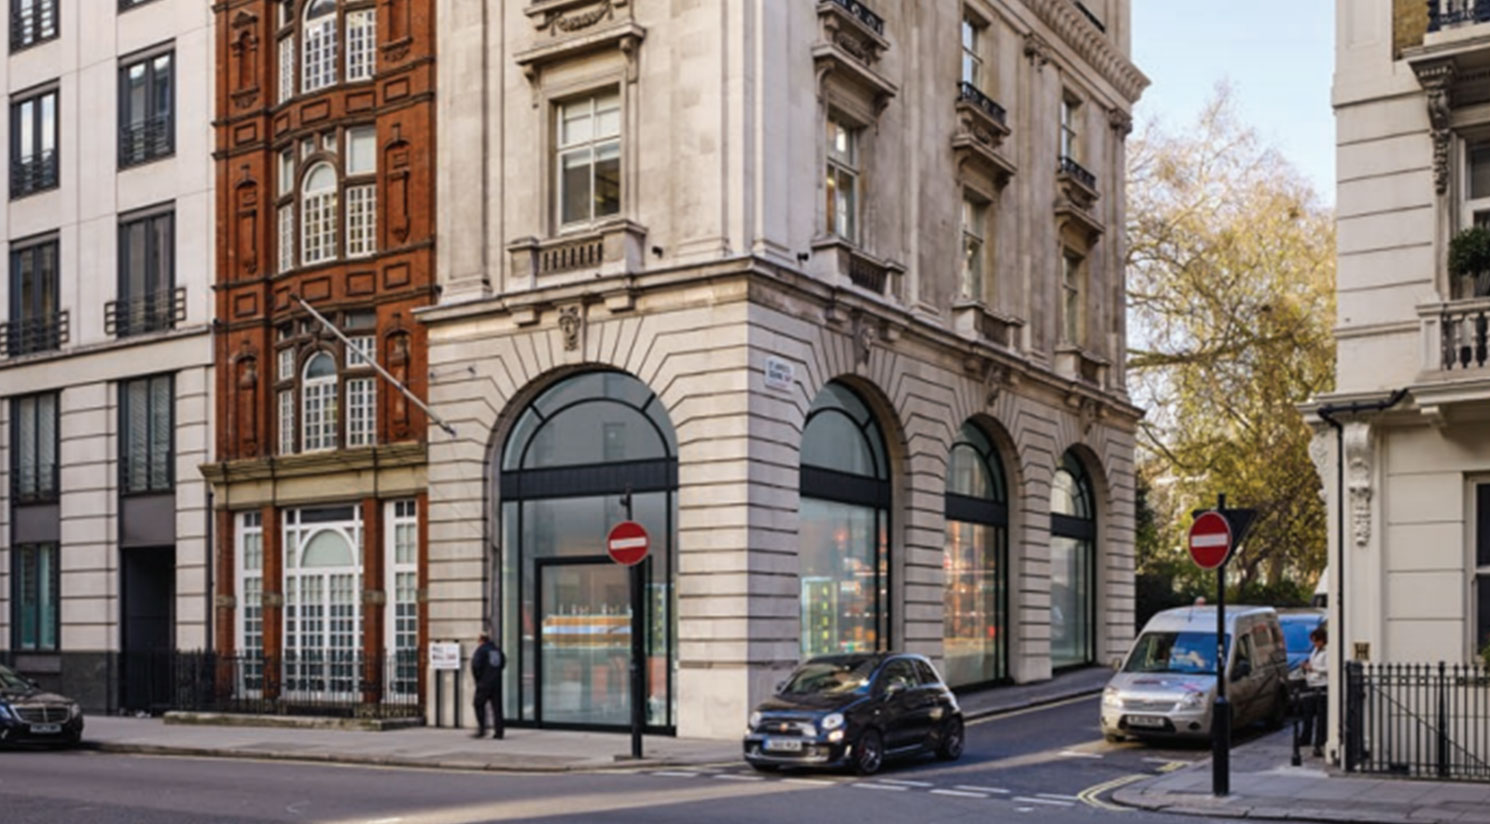 St James' Square Office Redevelopment